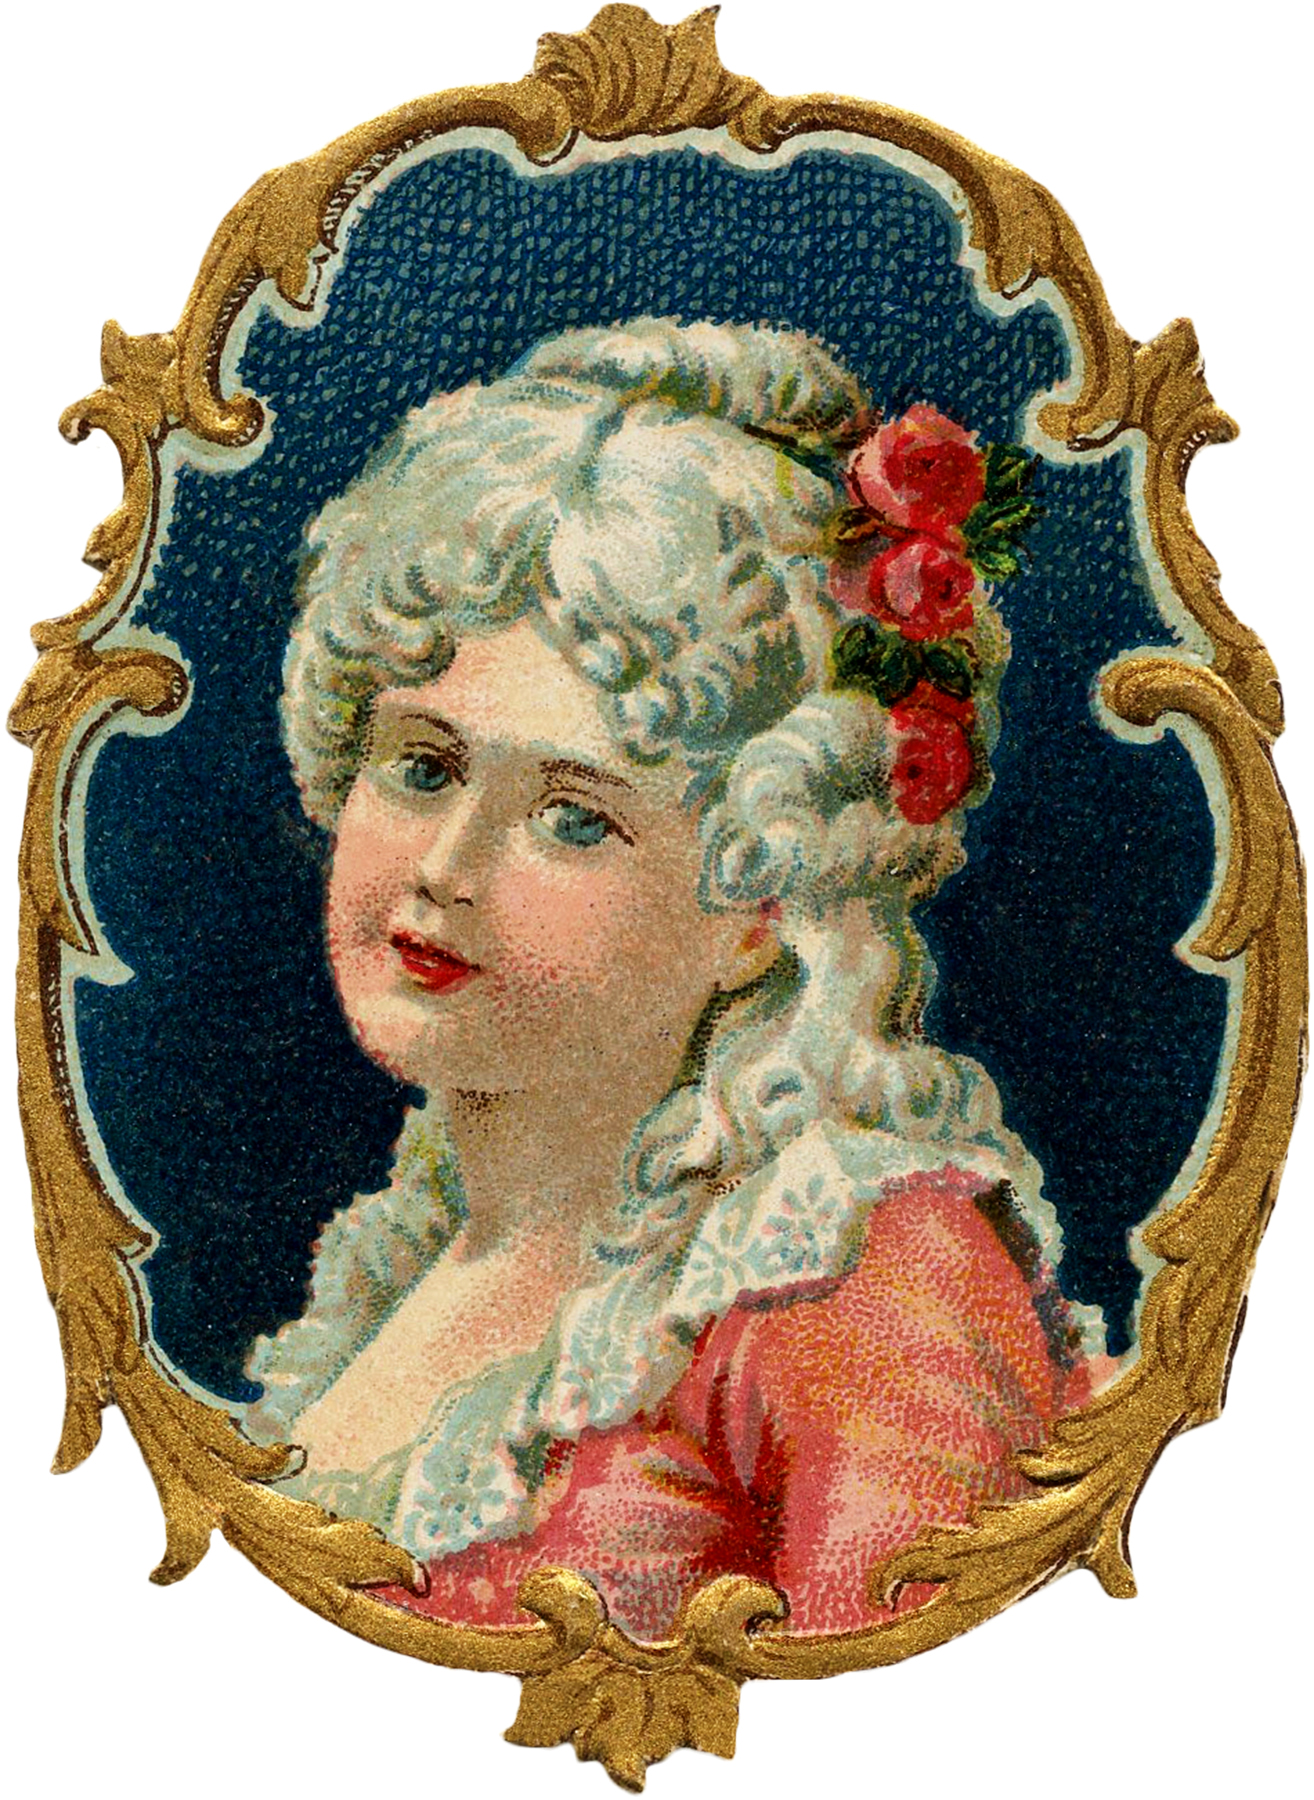 The Graphics Fairy: Pretty Colonial Girl Image!